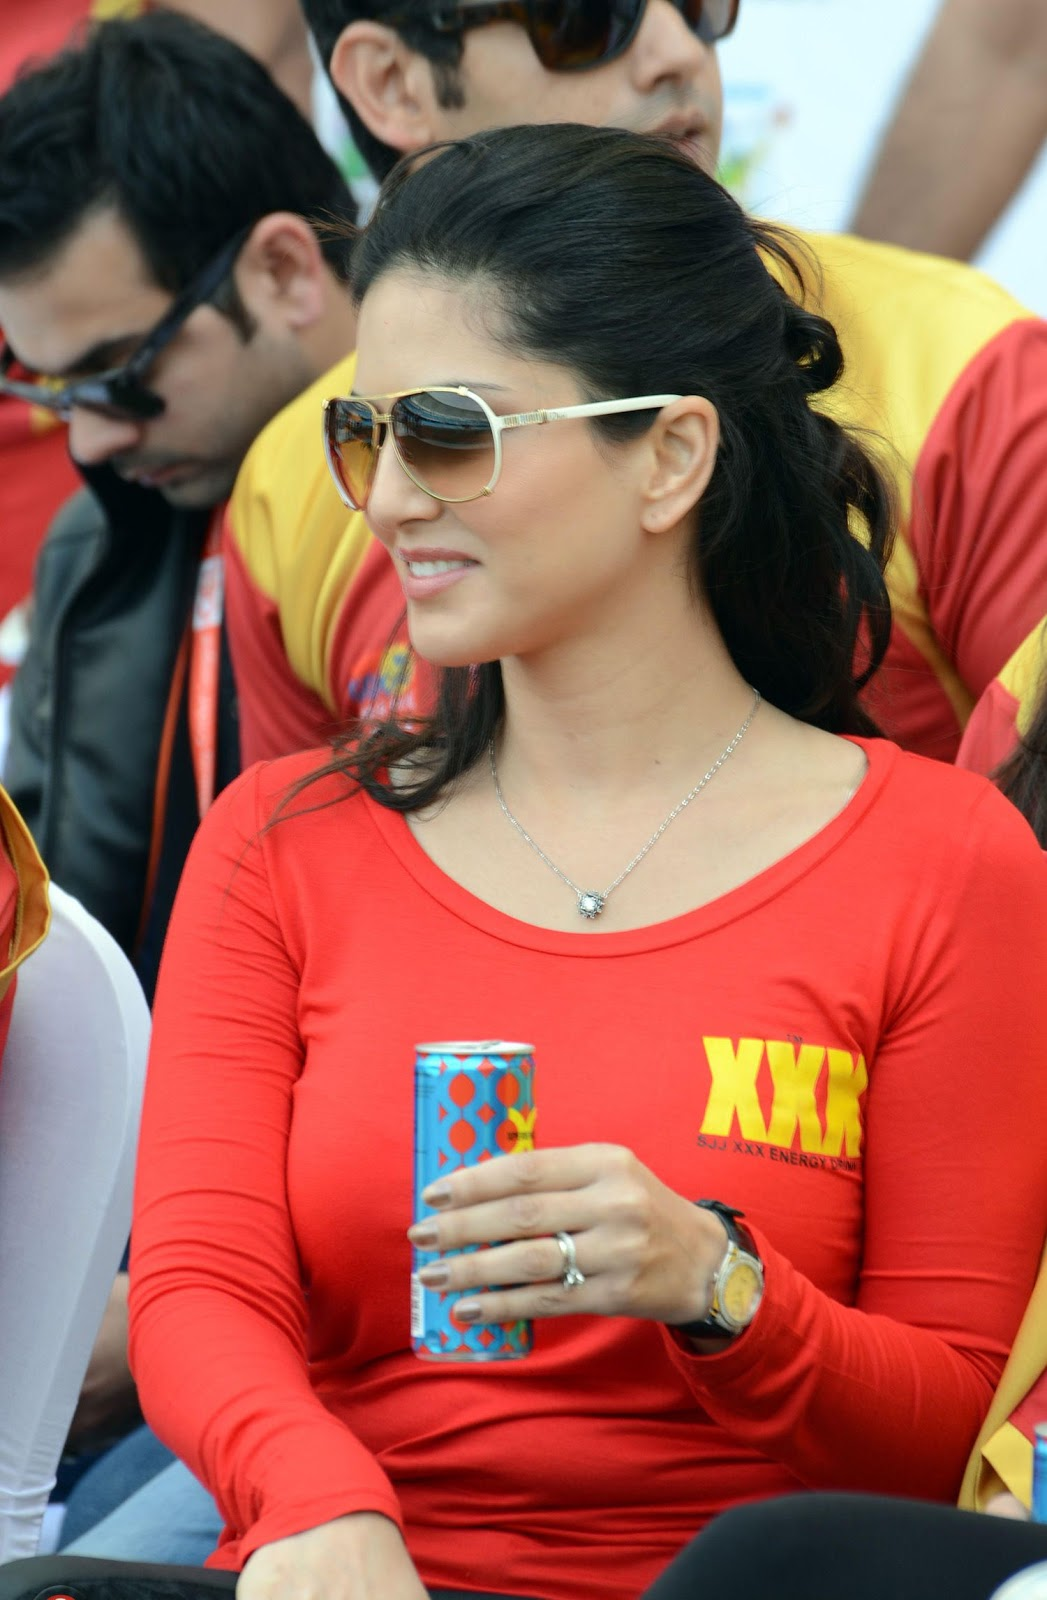 Porn Star Sunny Leone wear XXX Shirt during CCL Match